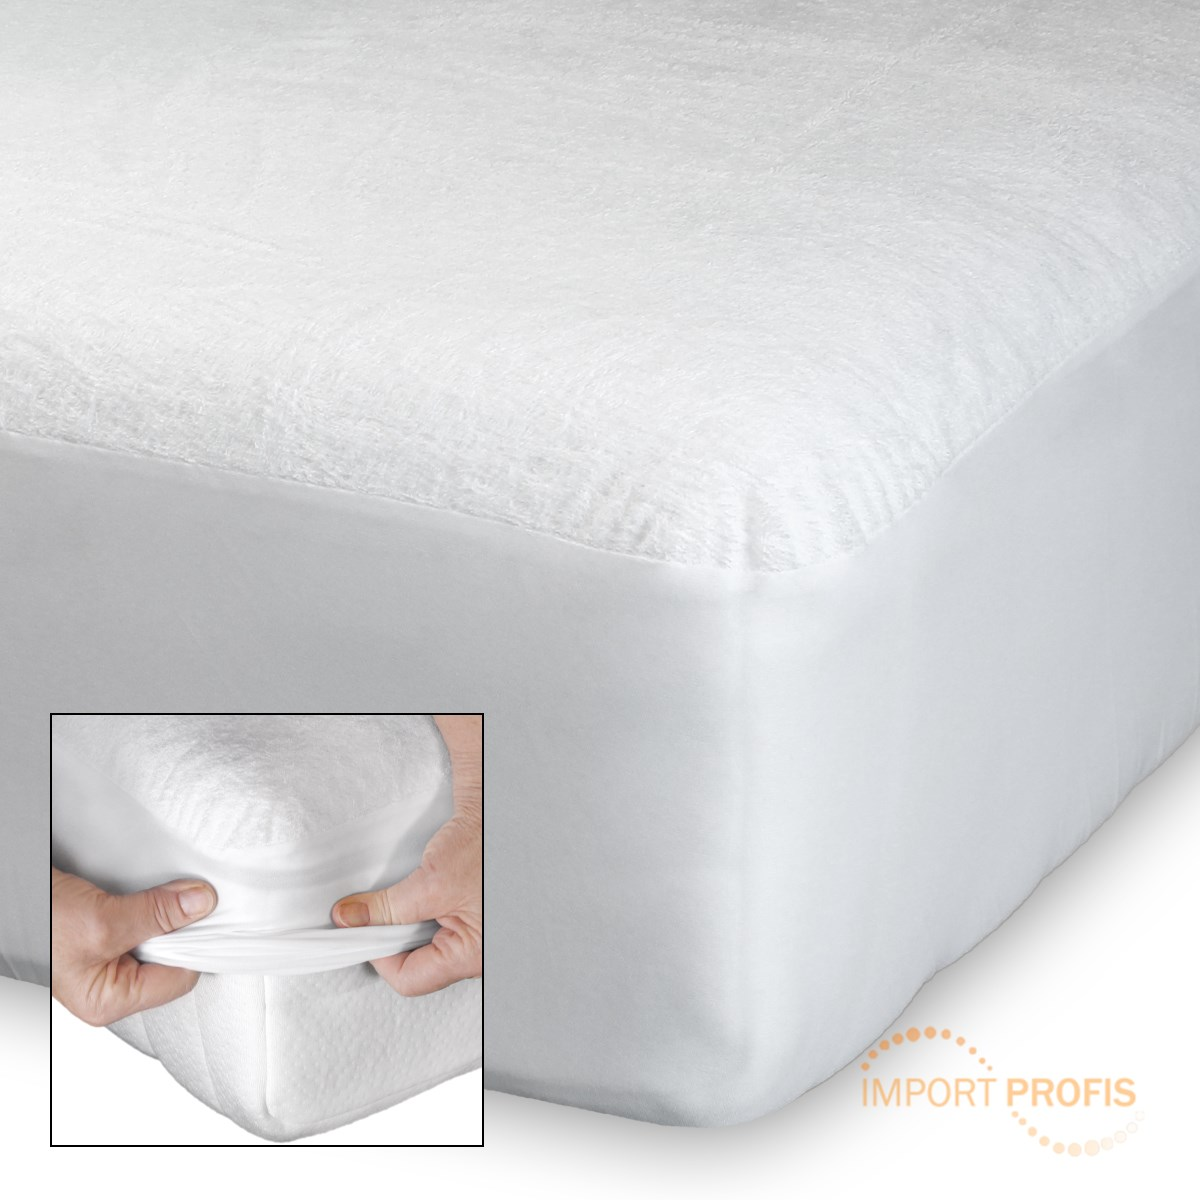 Mattress Protector Bed Cover Mattress Pads Bedding Toppers